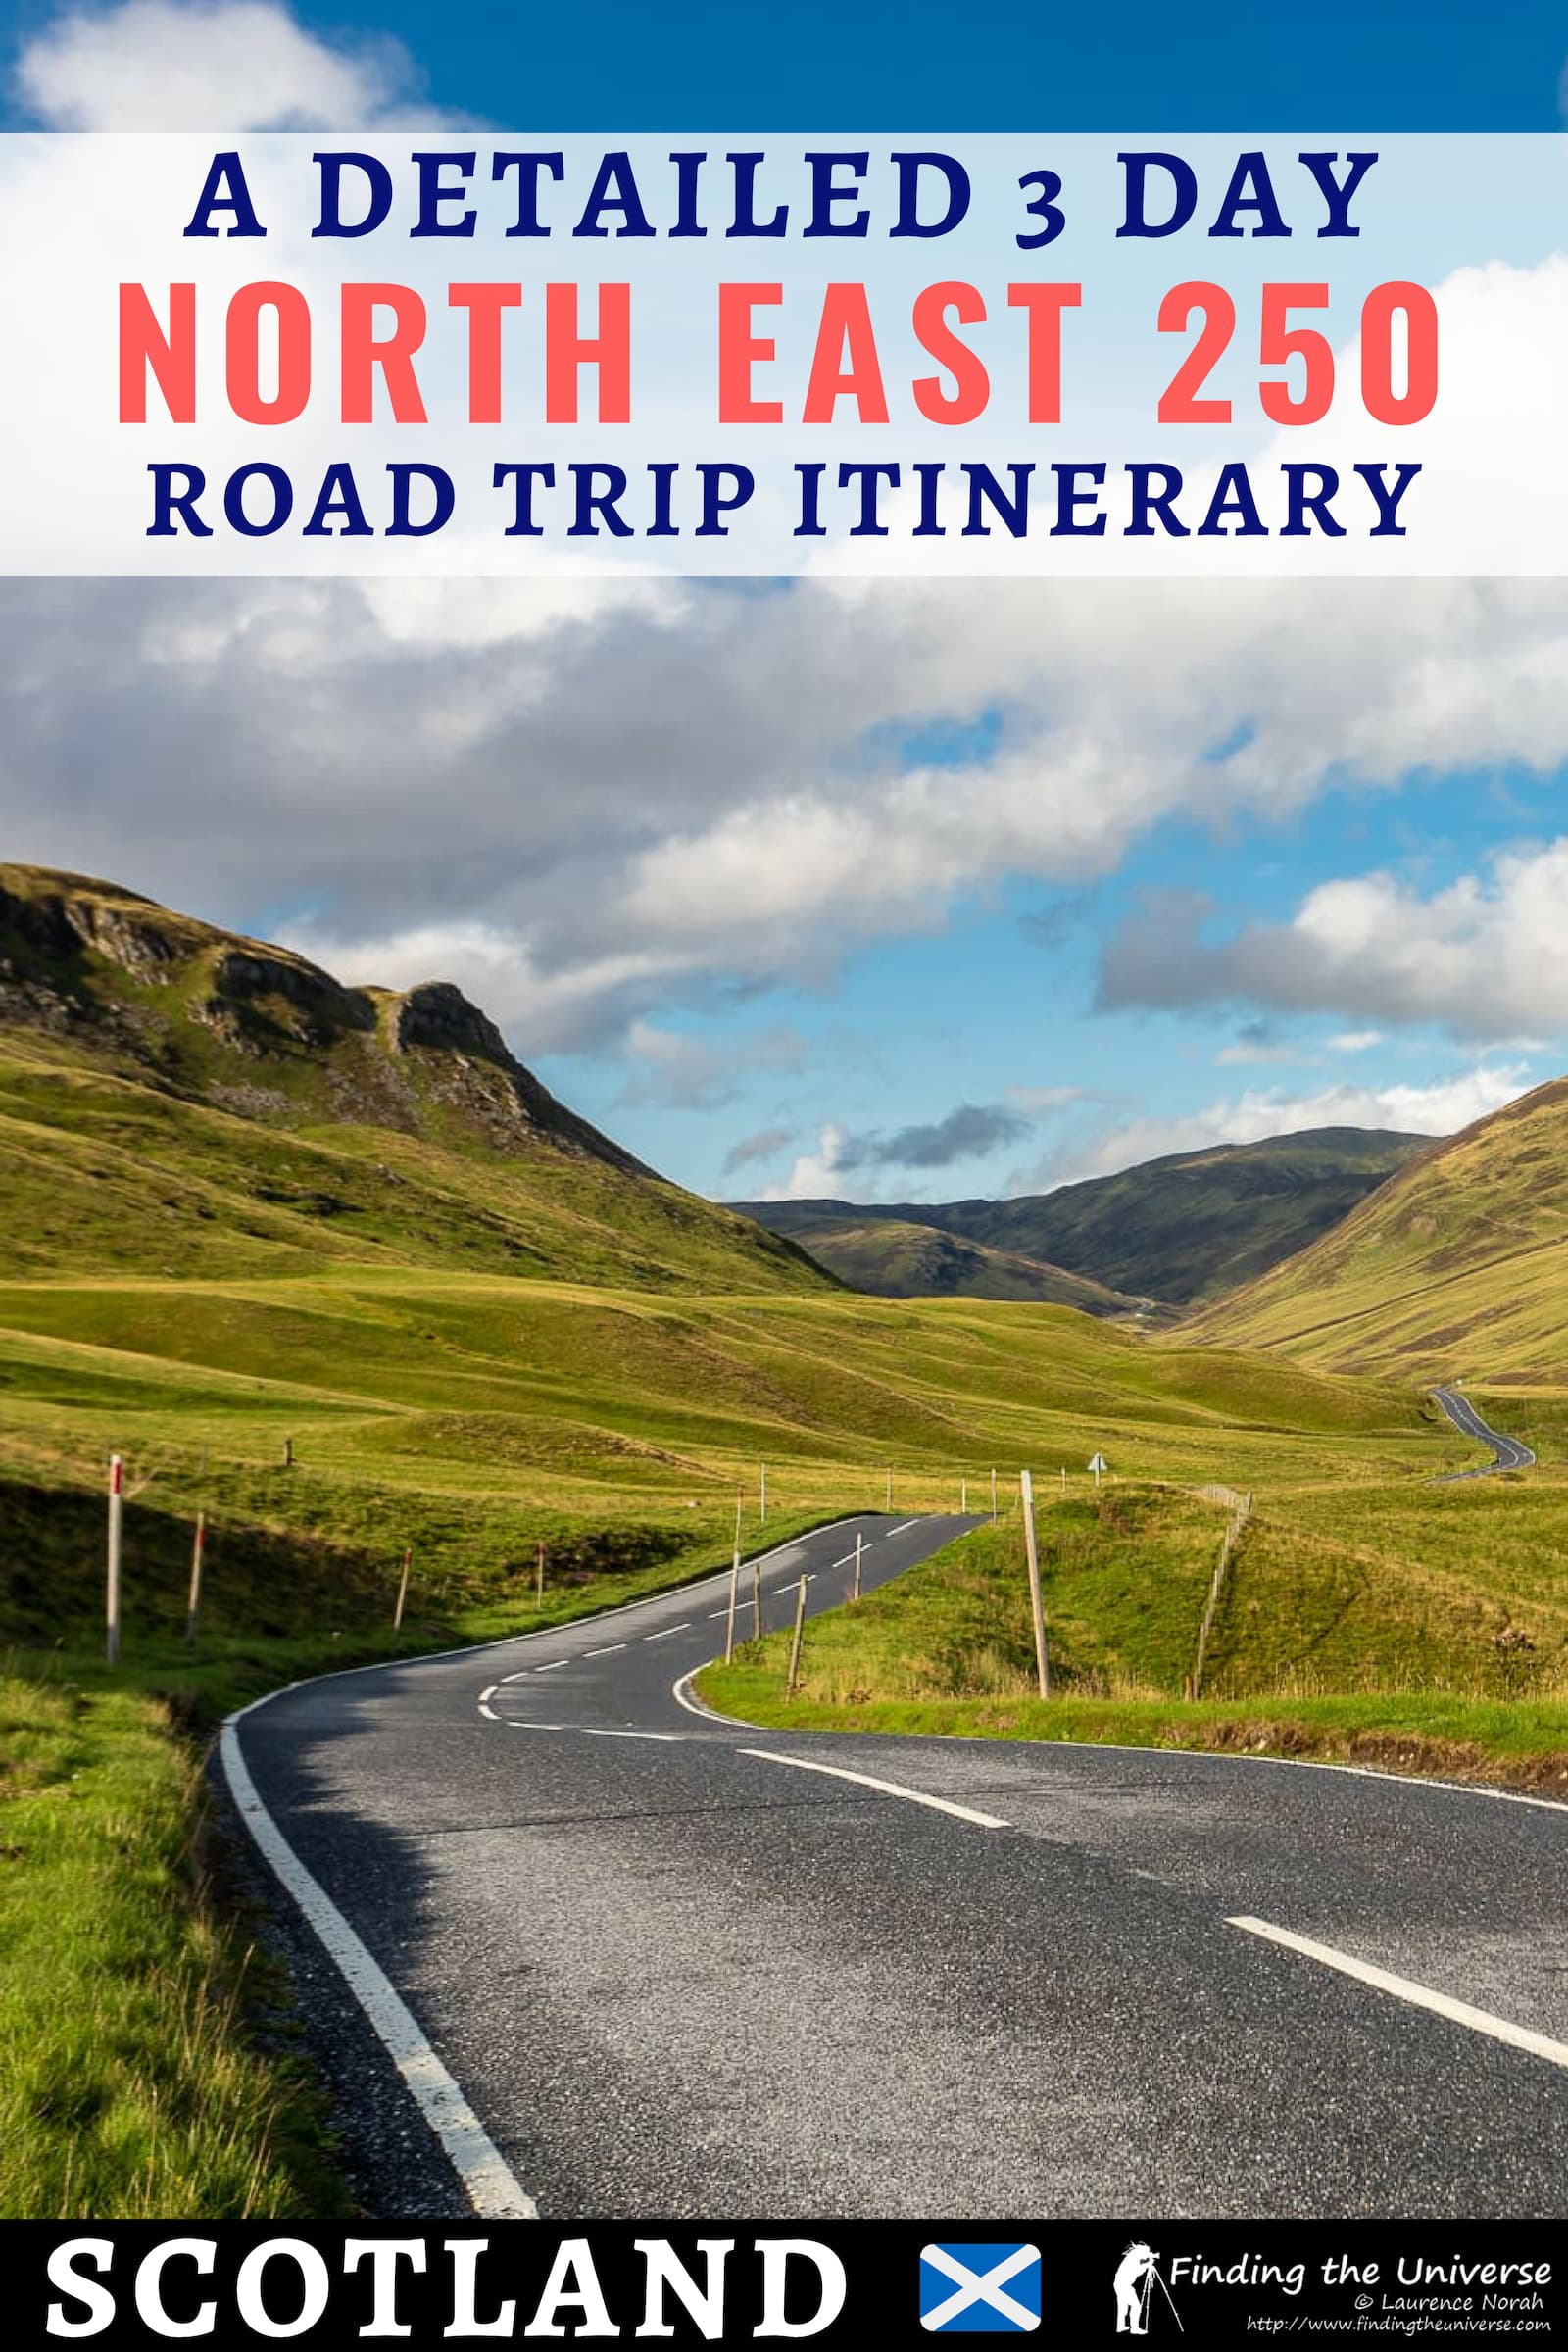 A detailed 3 day itinerary for driving the North East 250, a road trip in Scotland which spans sections of the Caingorms, Aberdeen and the Moray Firth coast.